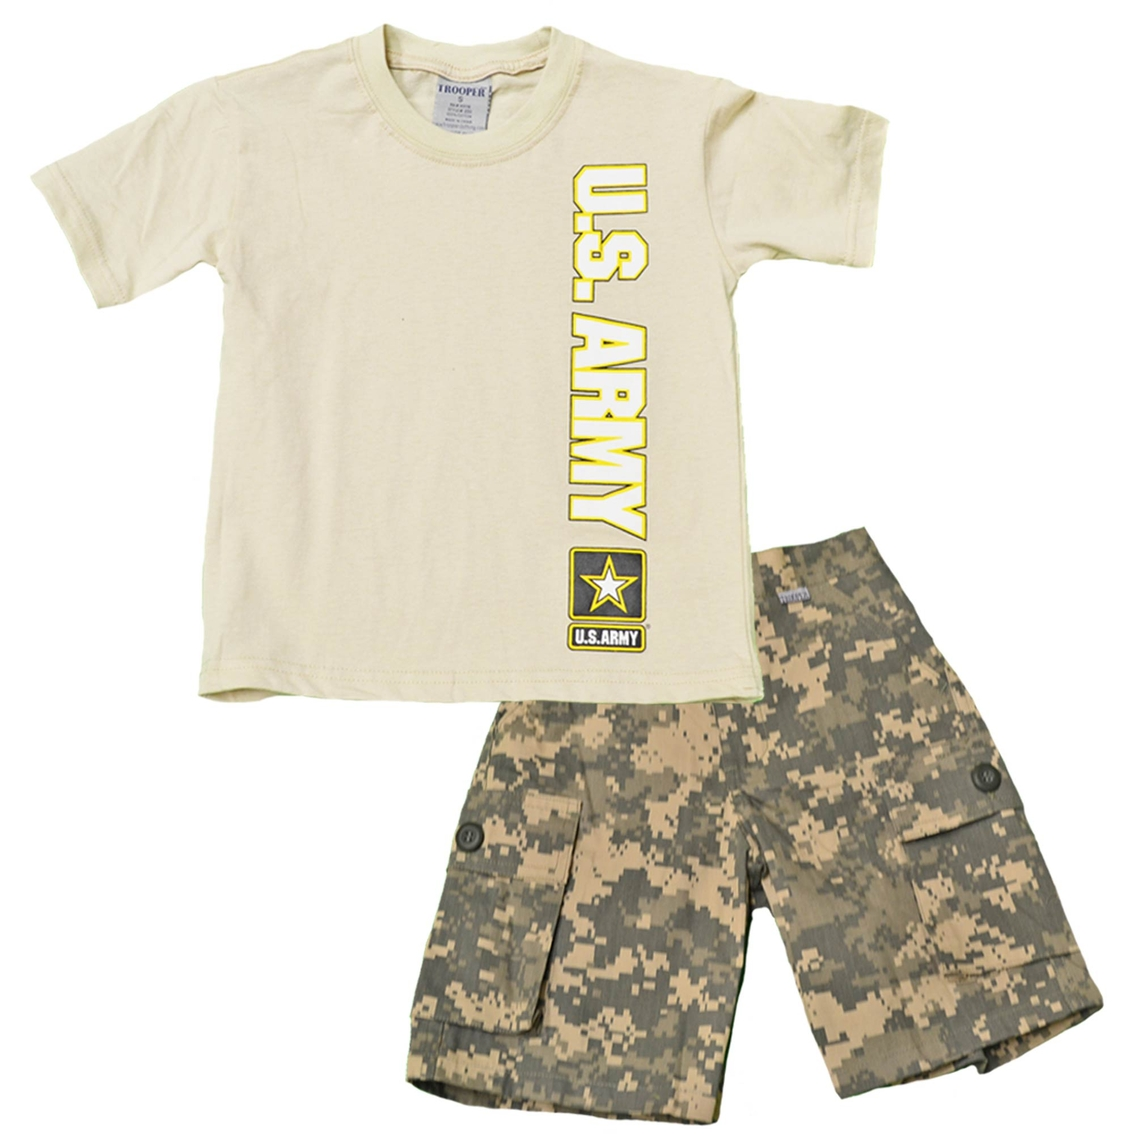 Trooper Clothing Little Boys Boys 2 Pc. Army Shirt and Camouflage Shorts Set 4e4d9d668084